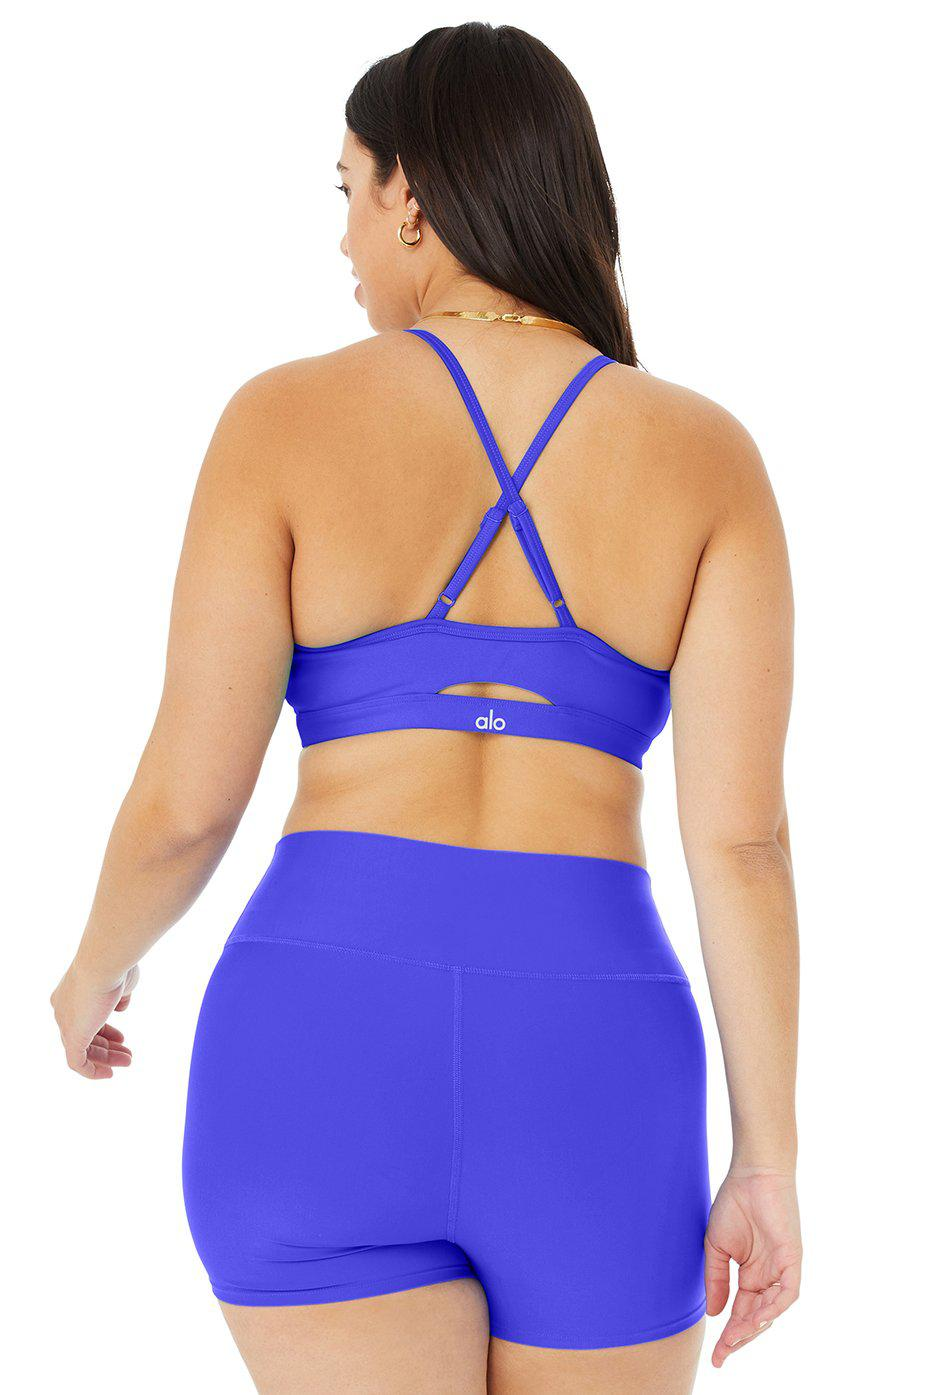 Airlift Intrigue Bra - Alo Blue 7